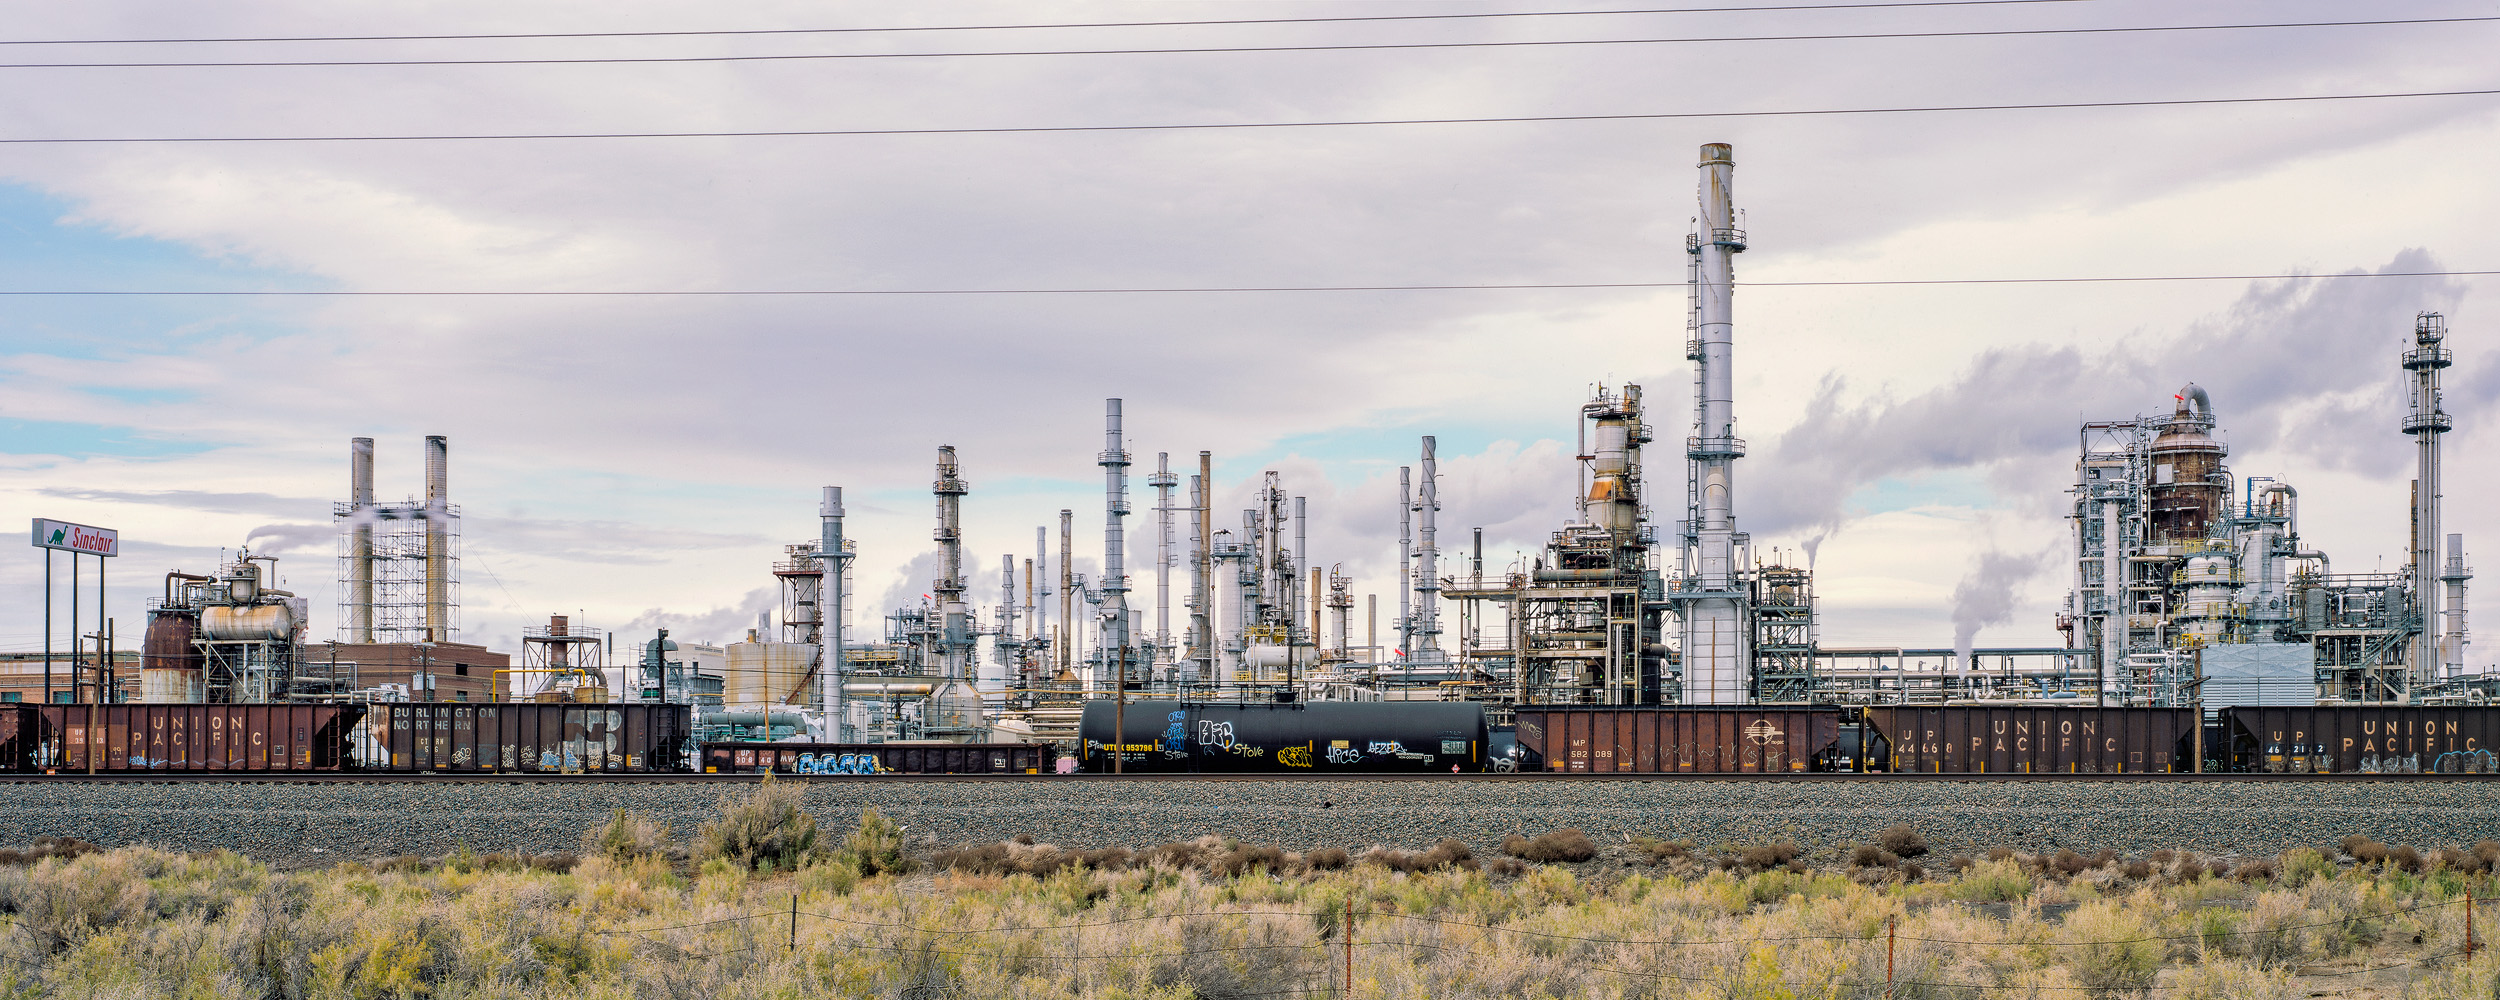 Sinclair Refinery, Carbon County, Wyoming